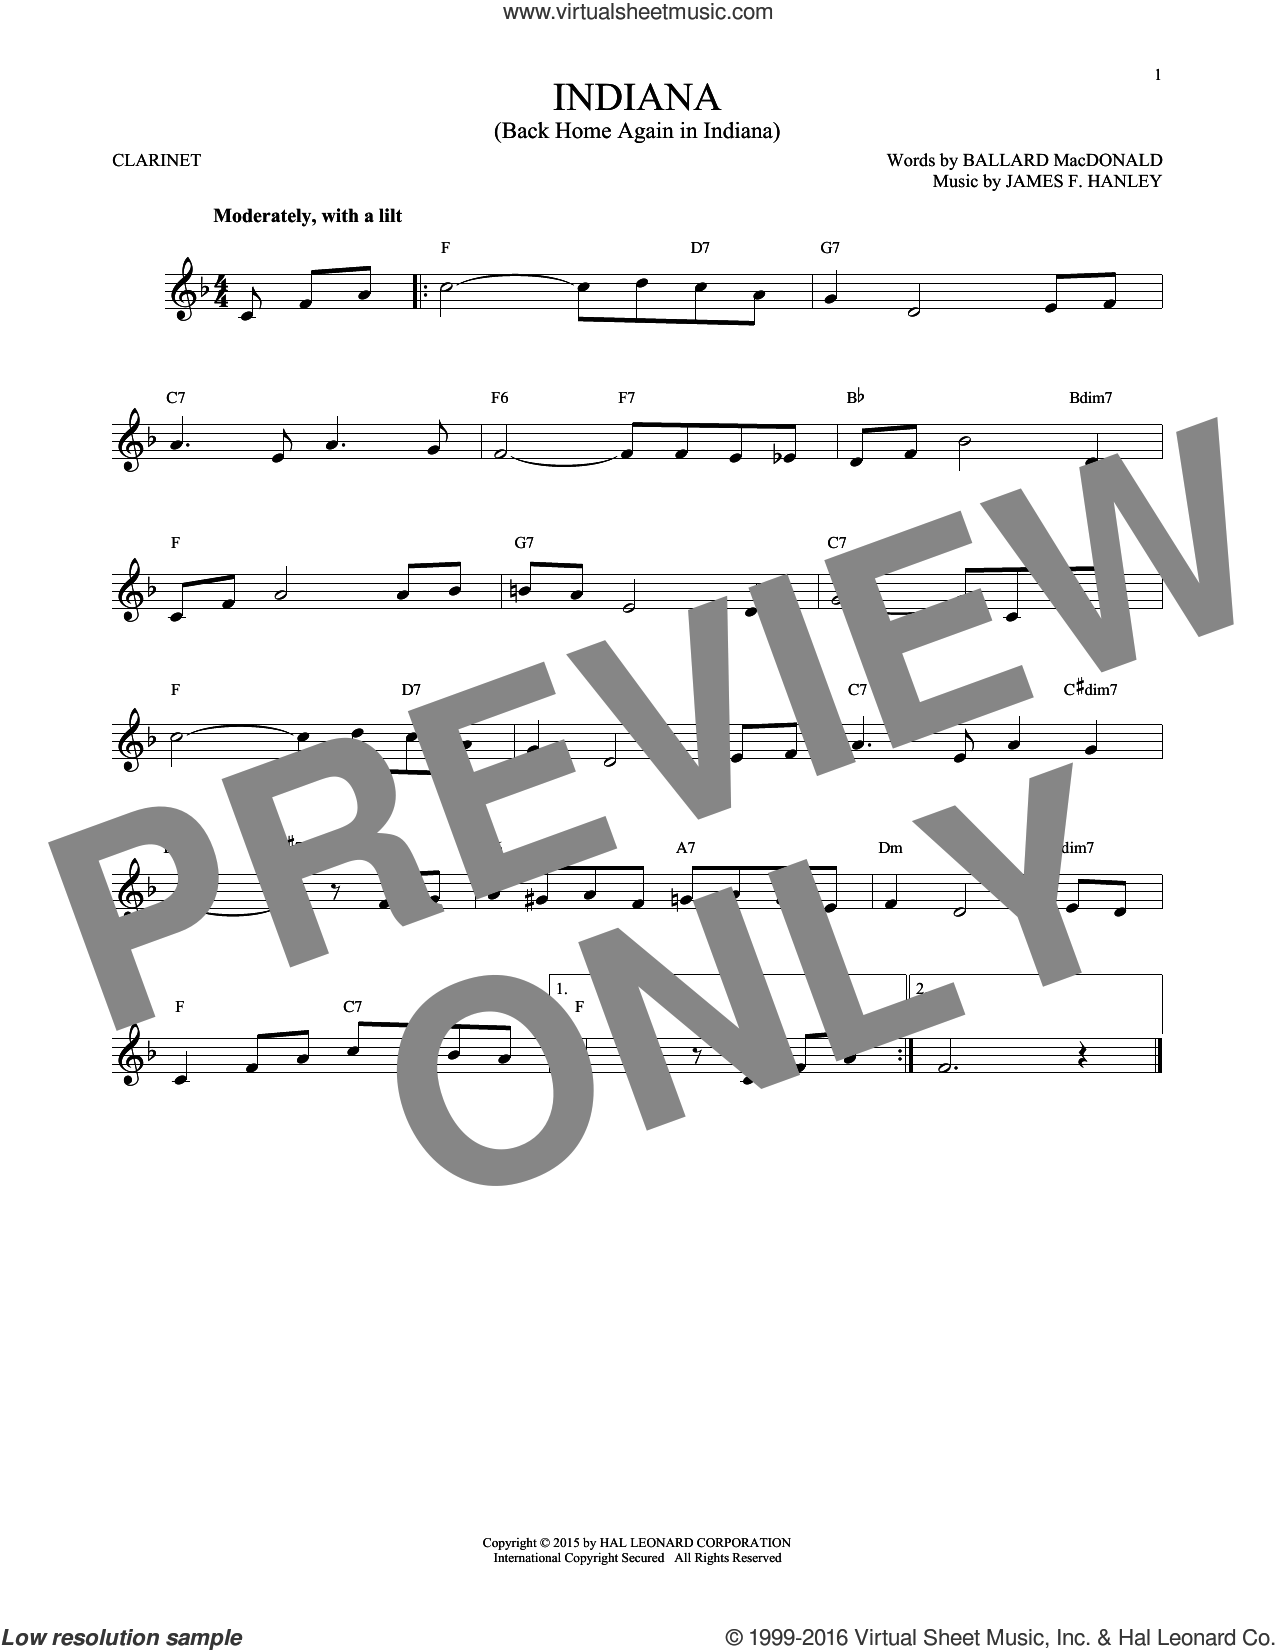 Indiana (Back Home Again In Indiana) sheet music for clarinet solo by James Hanley